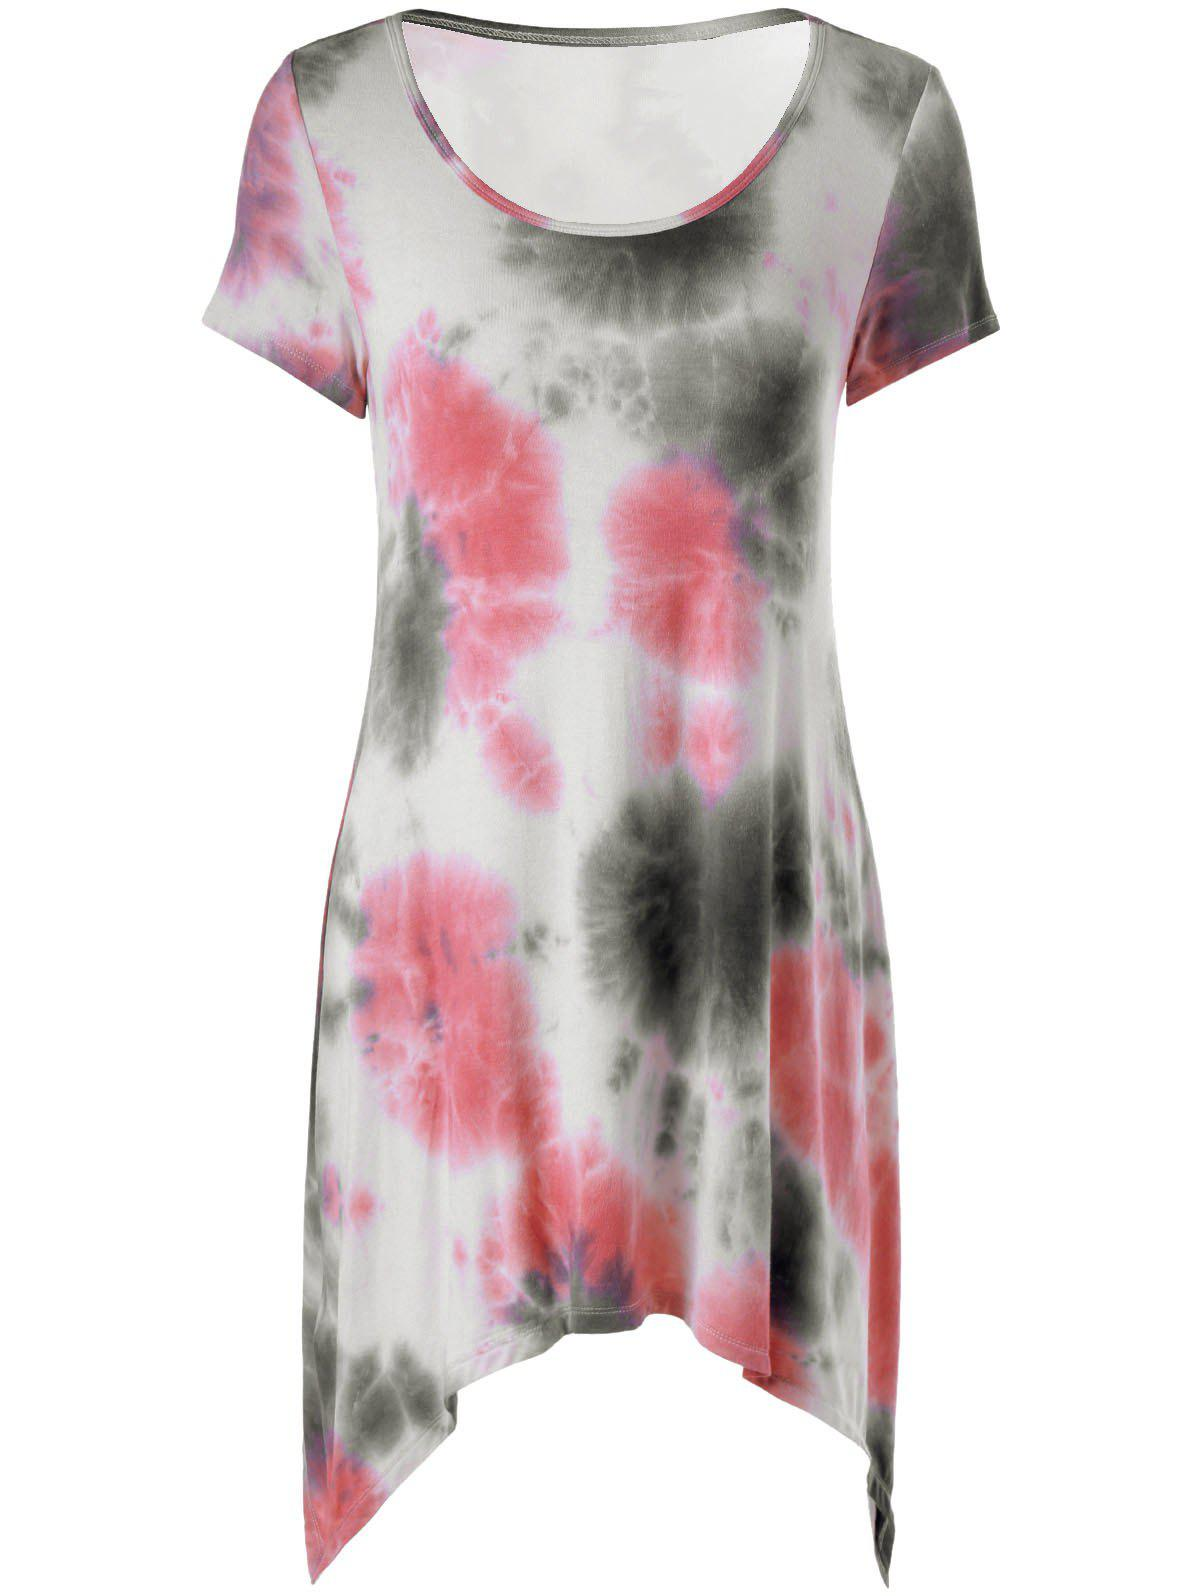 Fashionable Round Collar Tie-Dye Short Sleeve Dress For Women